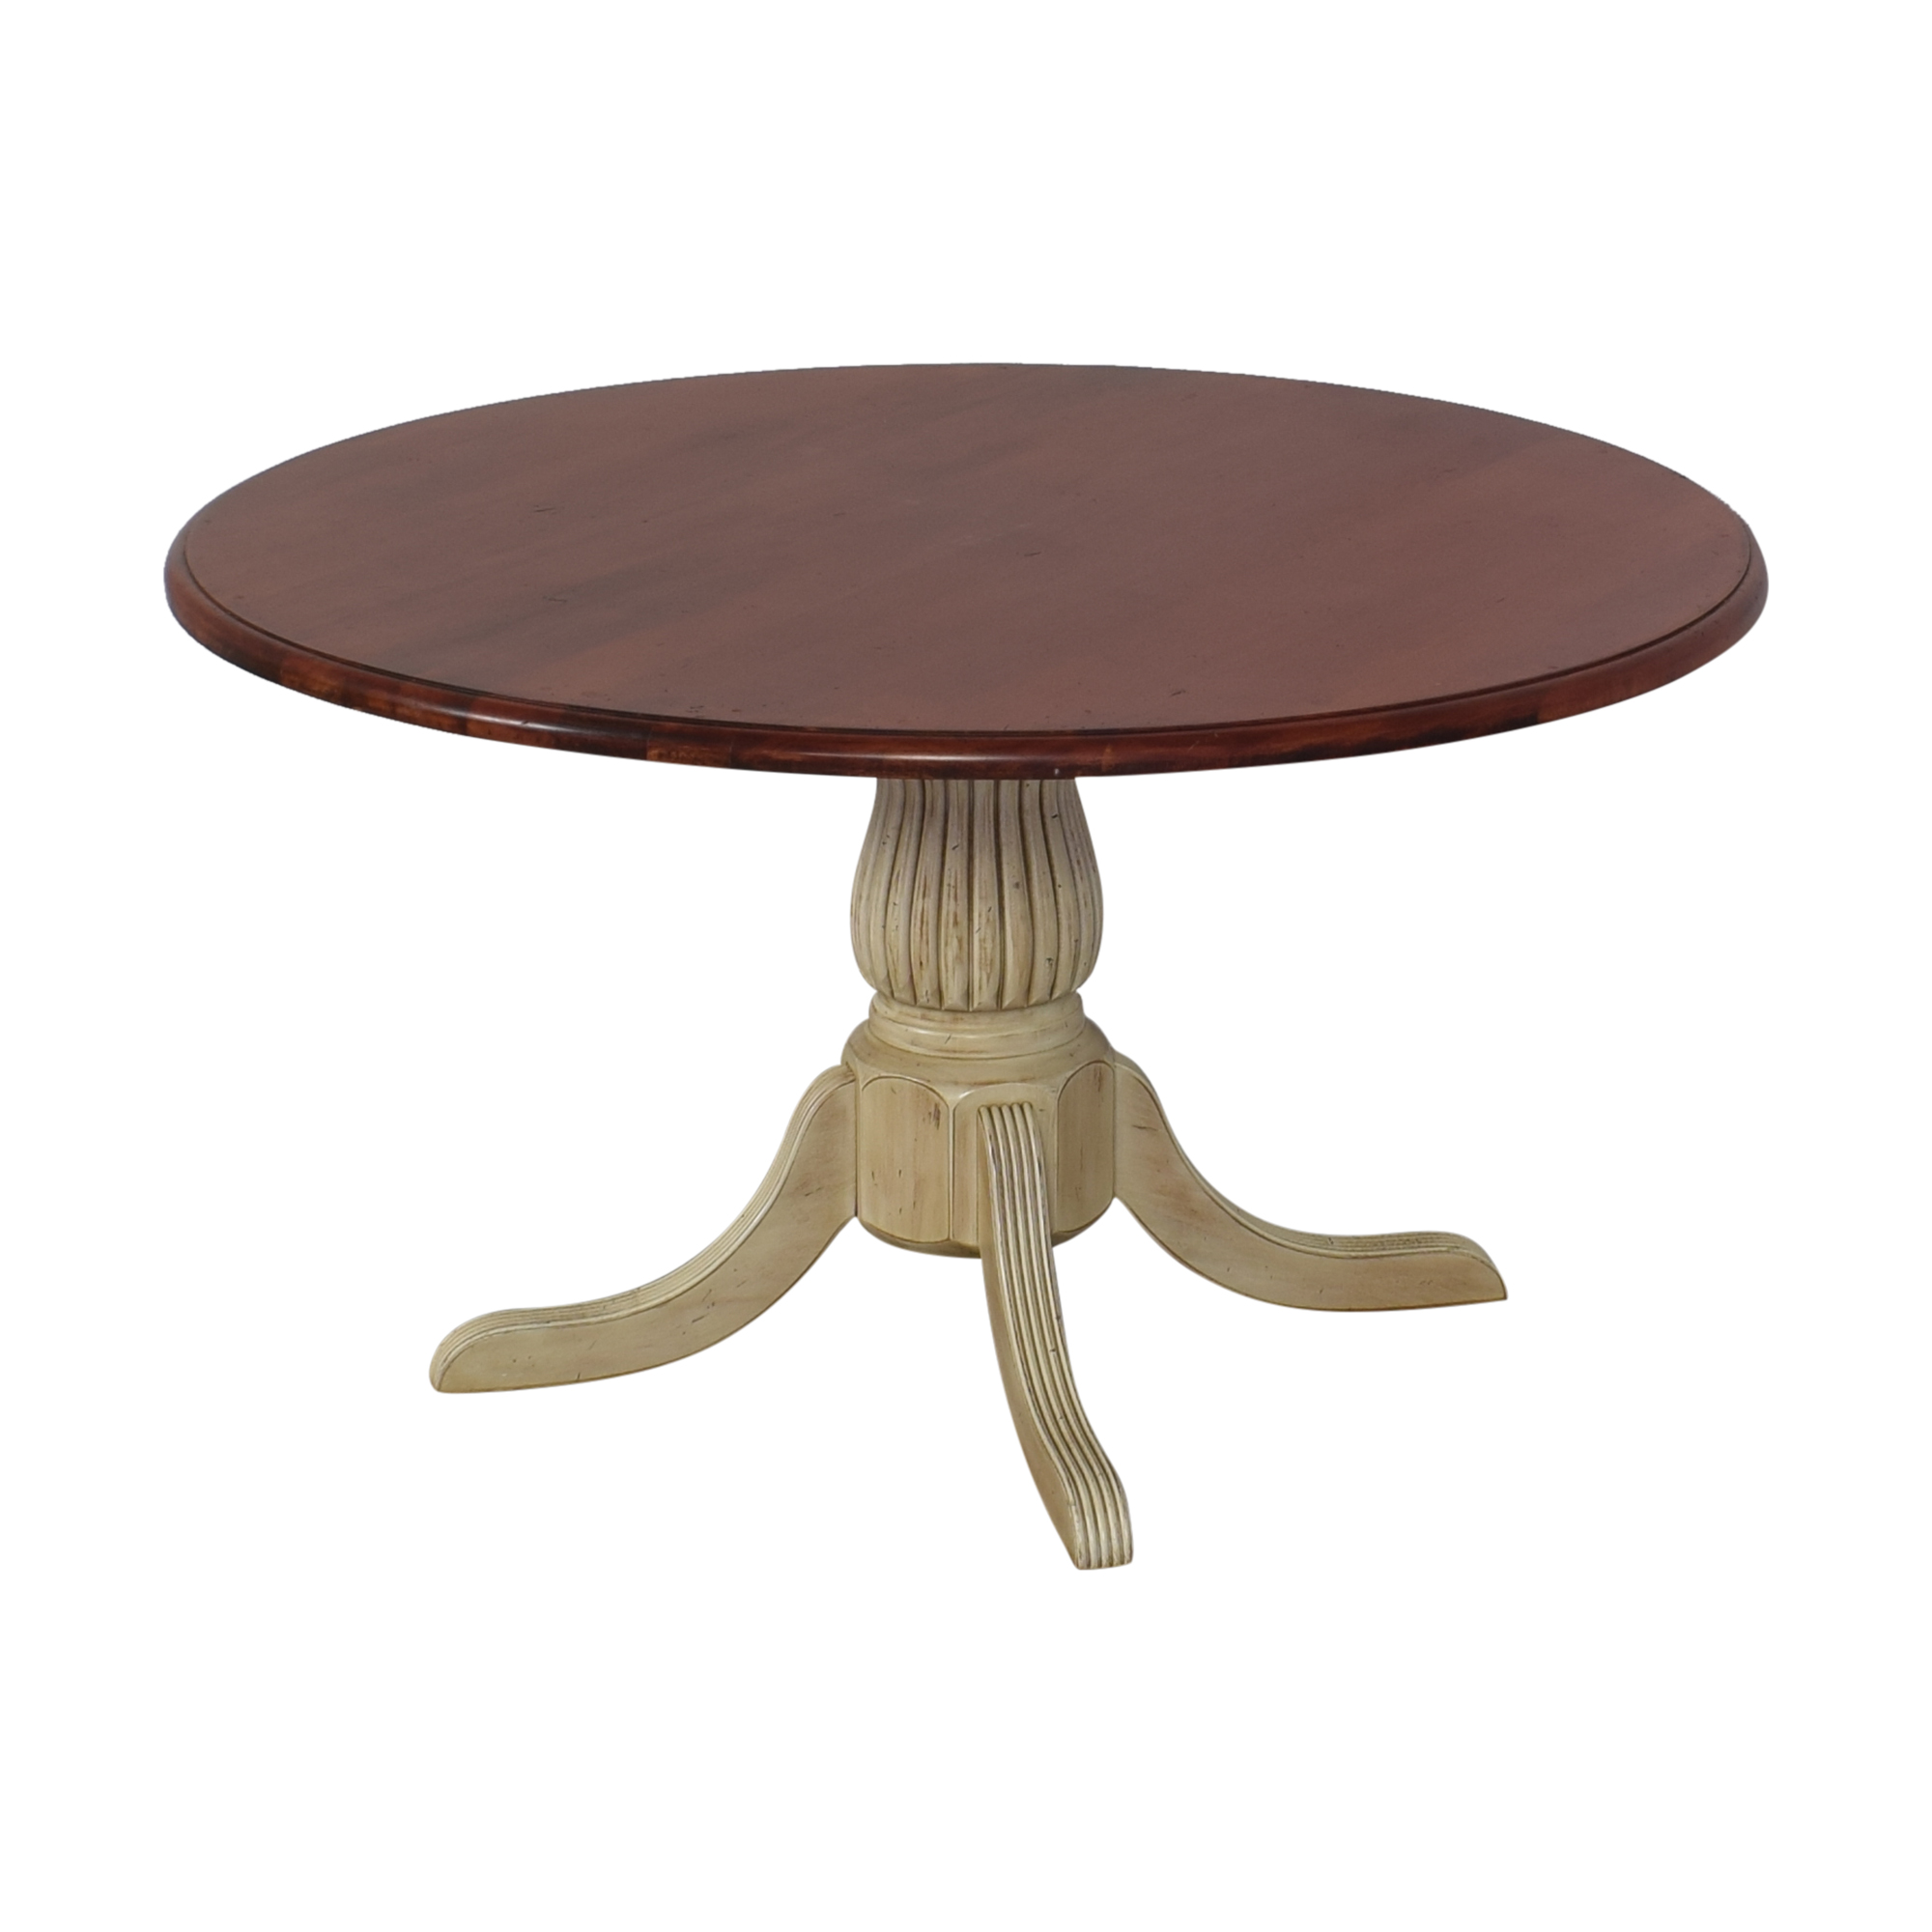 Four Foot Round Pedestal Dining Table / Tables